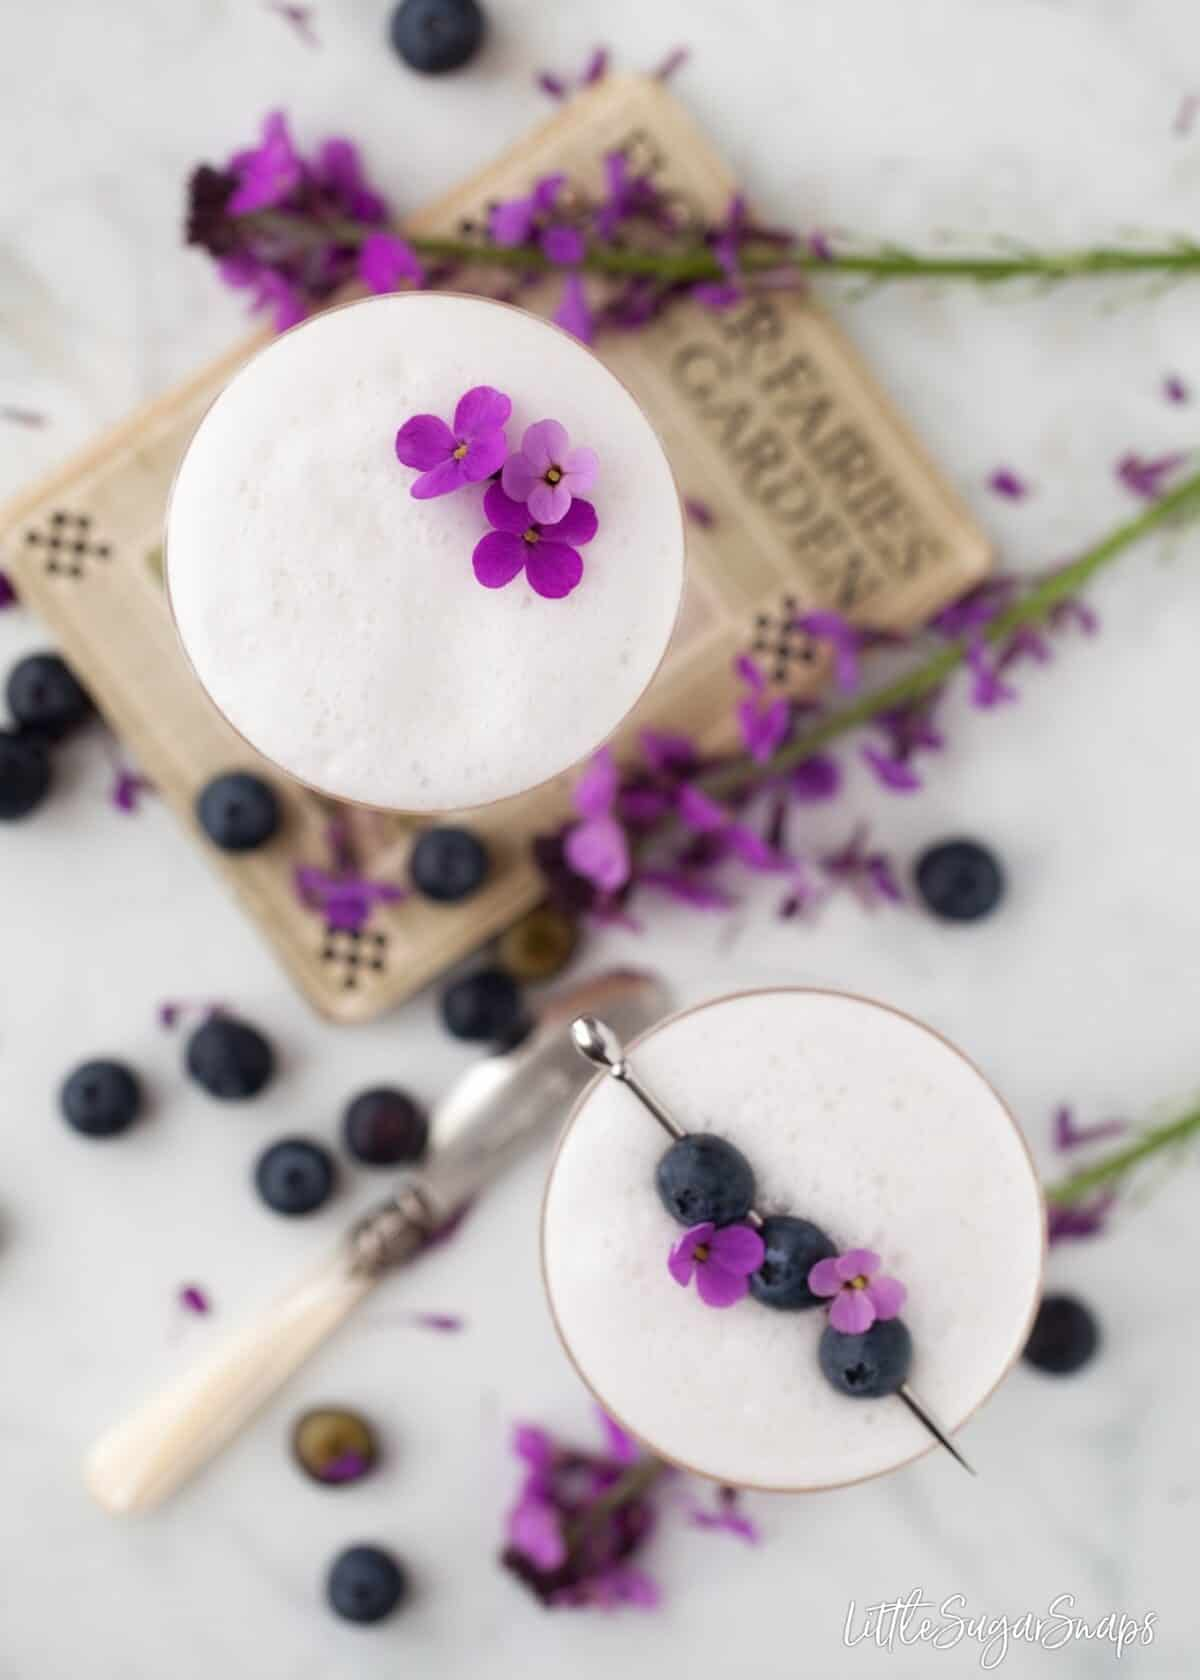 Two Violet Blueberry Gin Sour cocktails